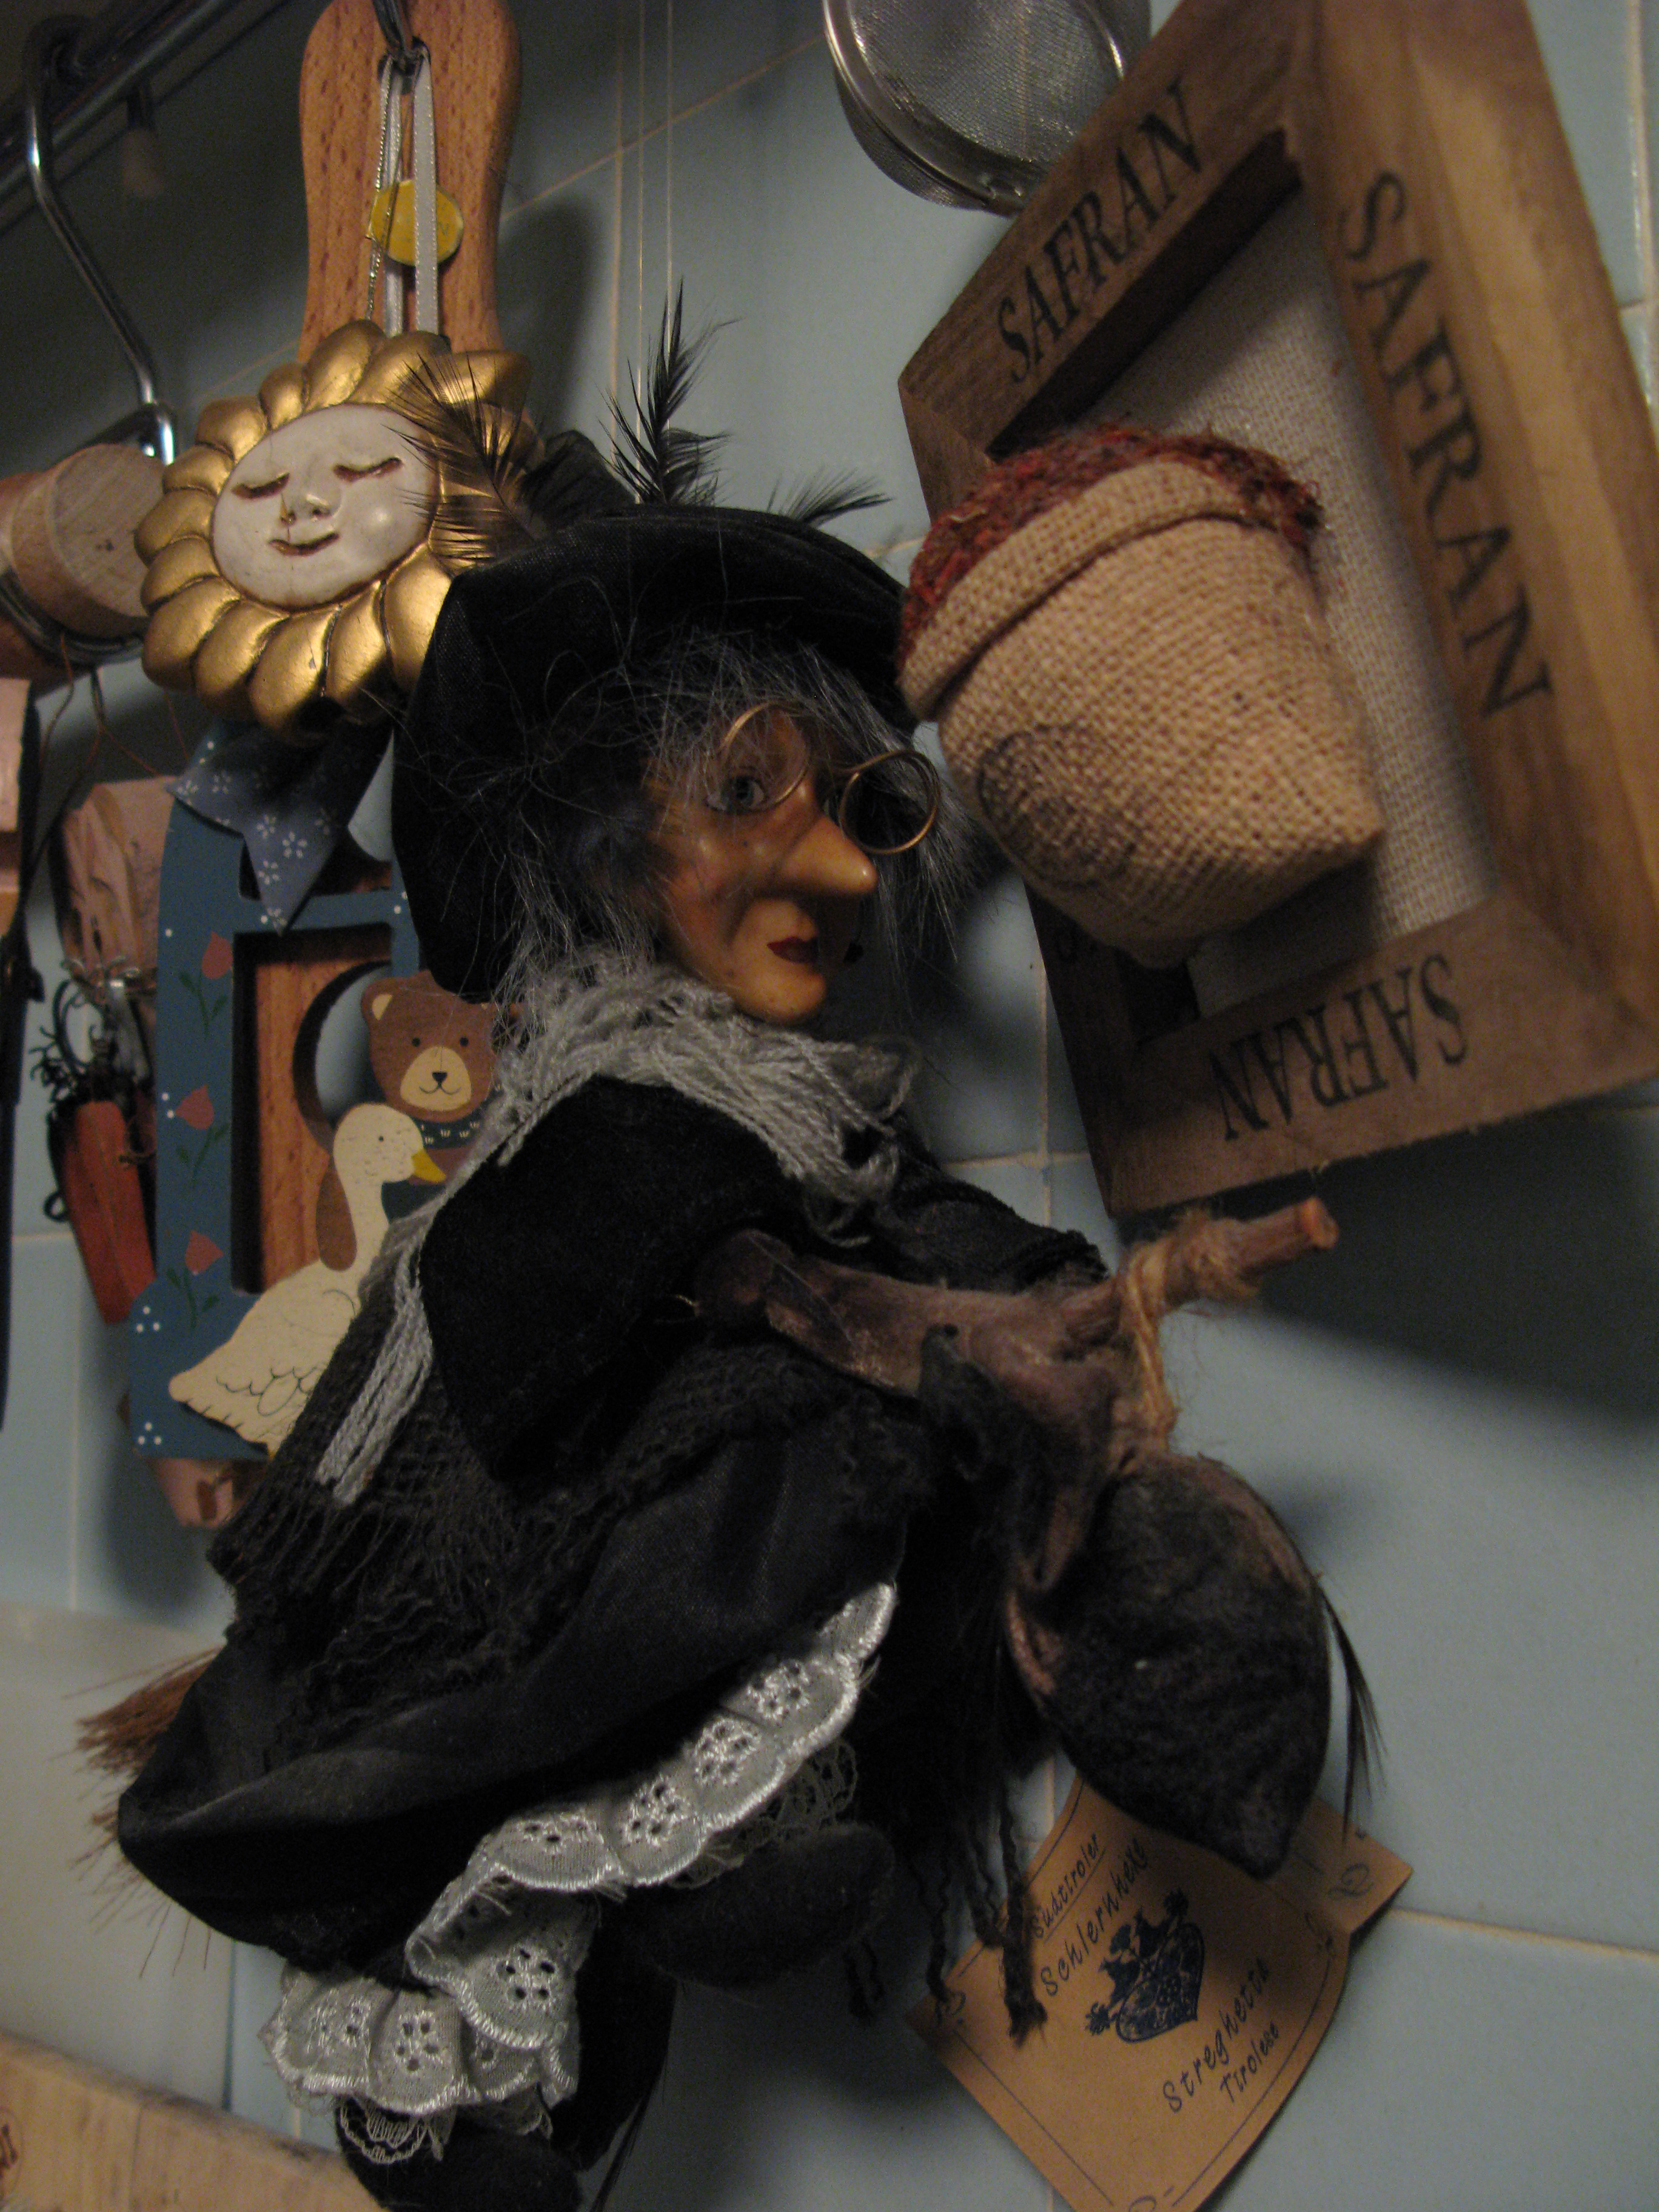 An image of La Befana riding a broomstick.